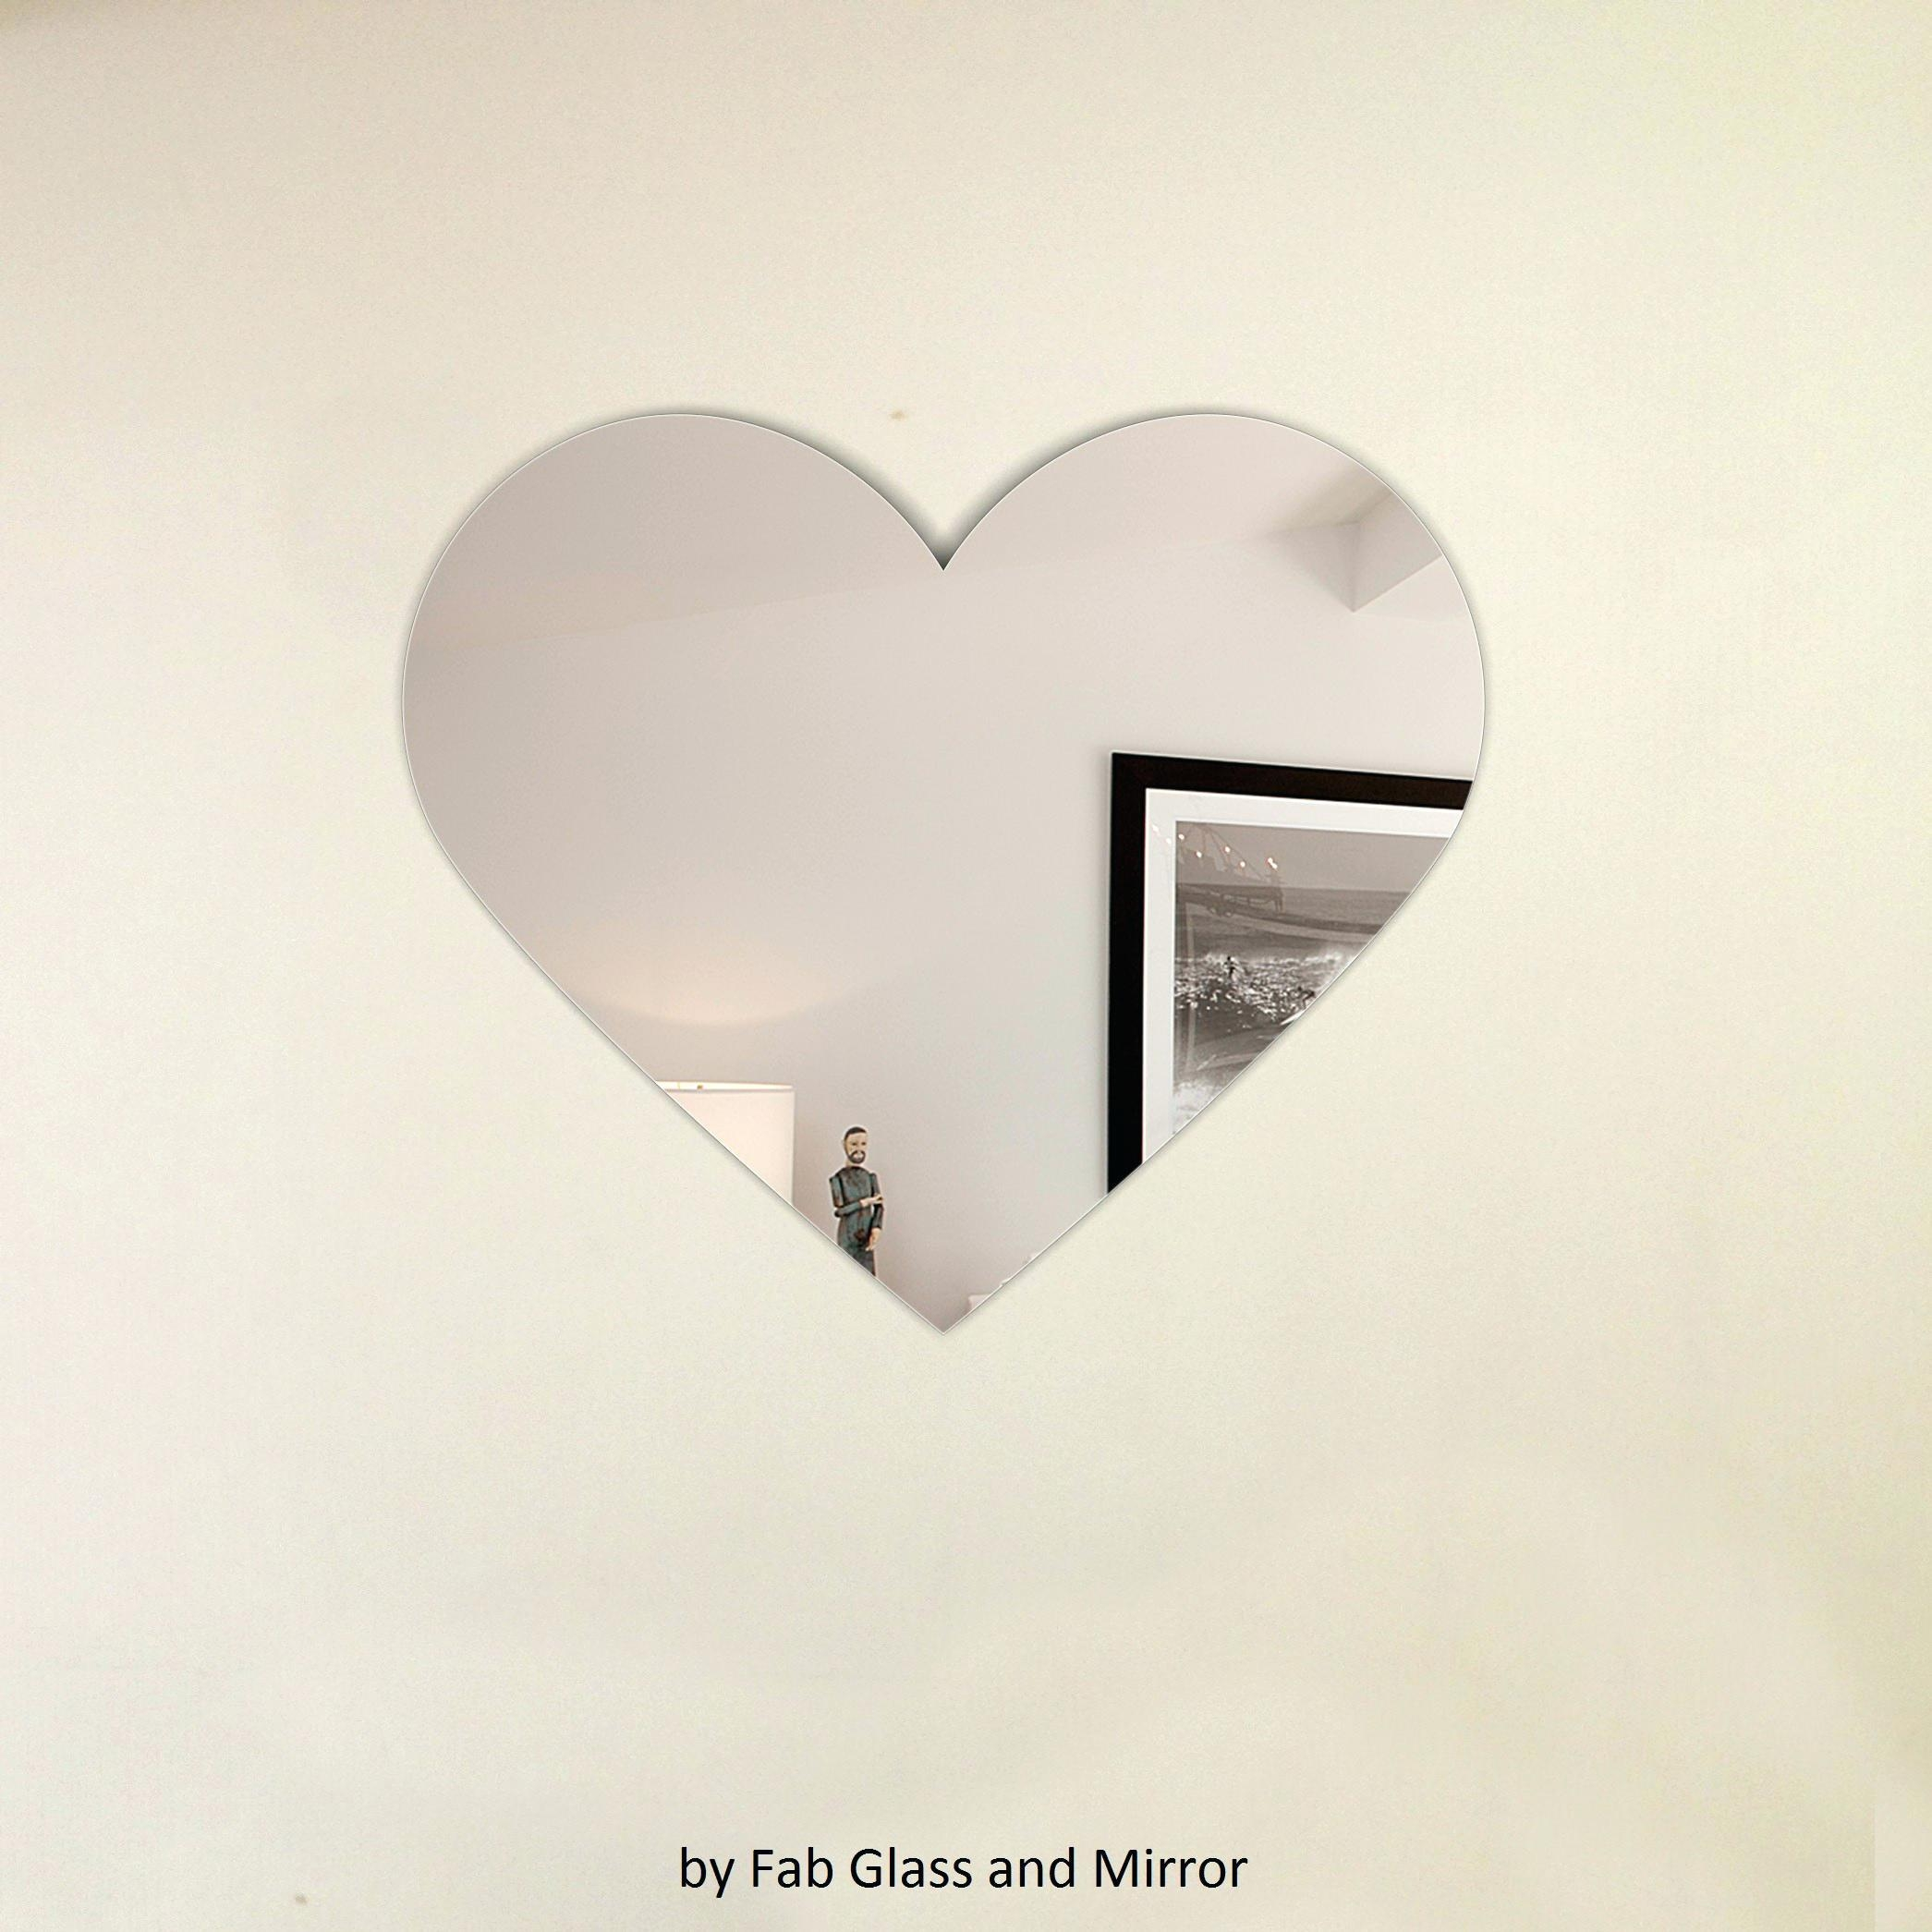 Heart Shape Venetian Wall Mirror 2Ft8 80Cm Lightbox Moreviewlarge Within Heart Shaped Mirrors For Walls (Image 8 of 20)